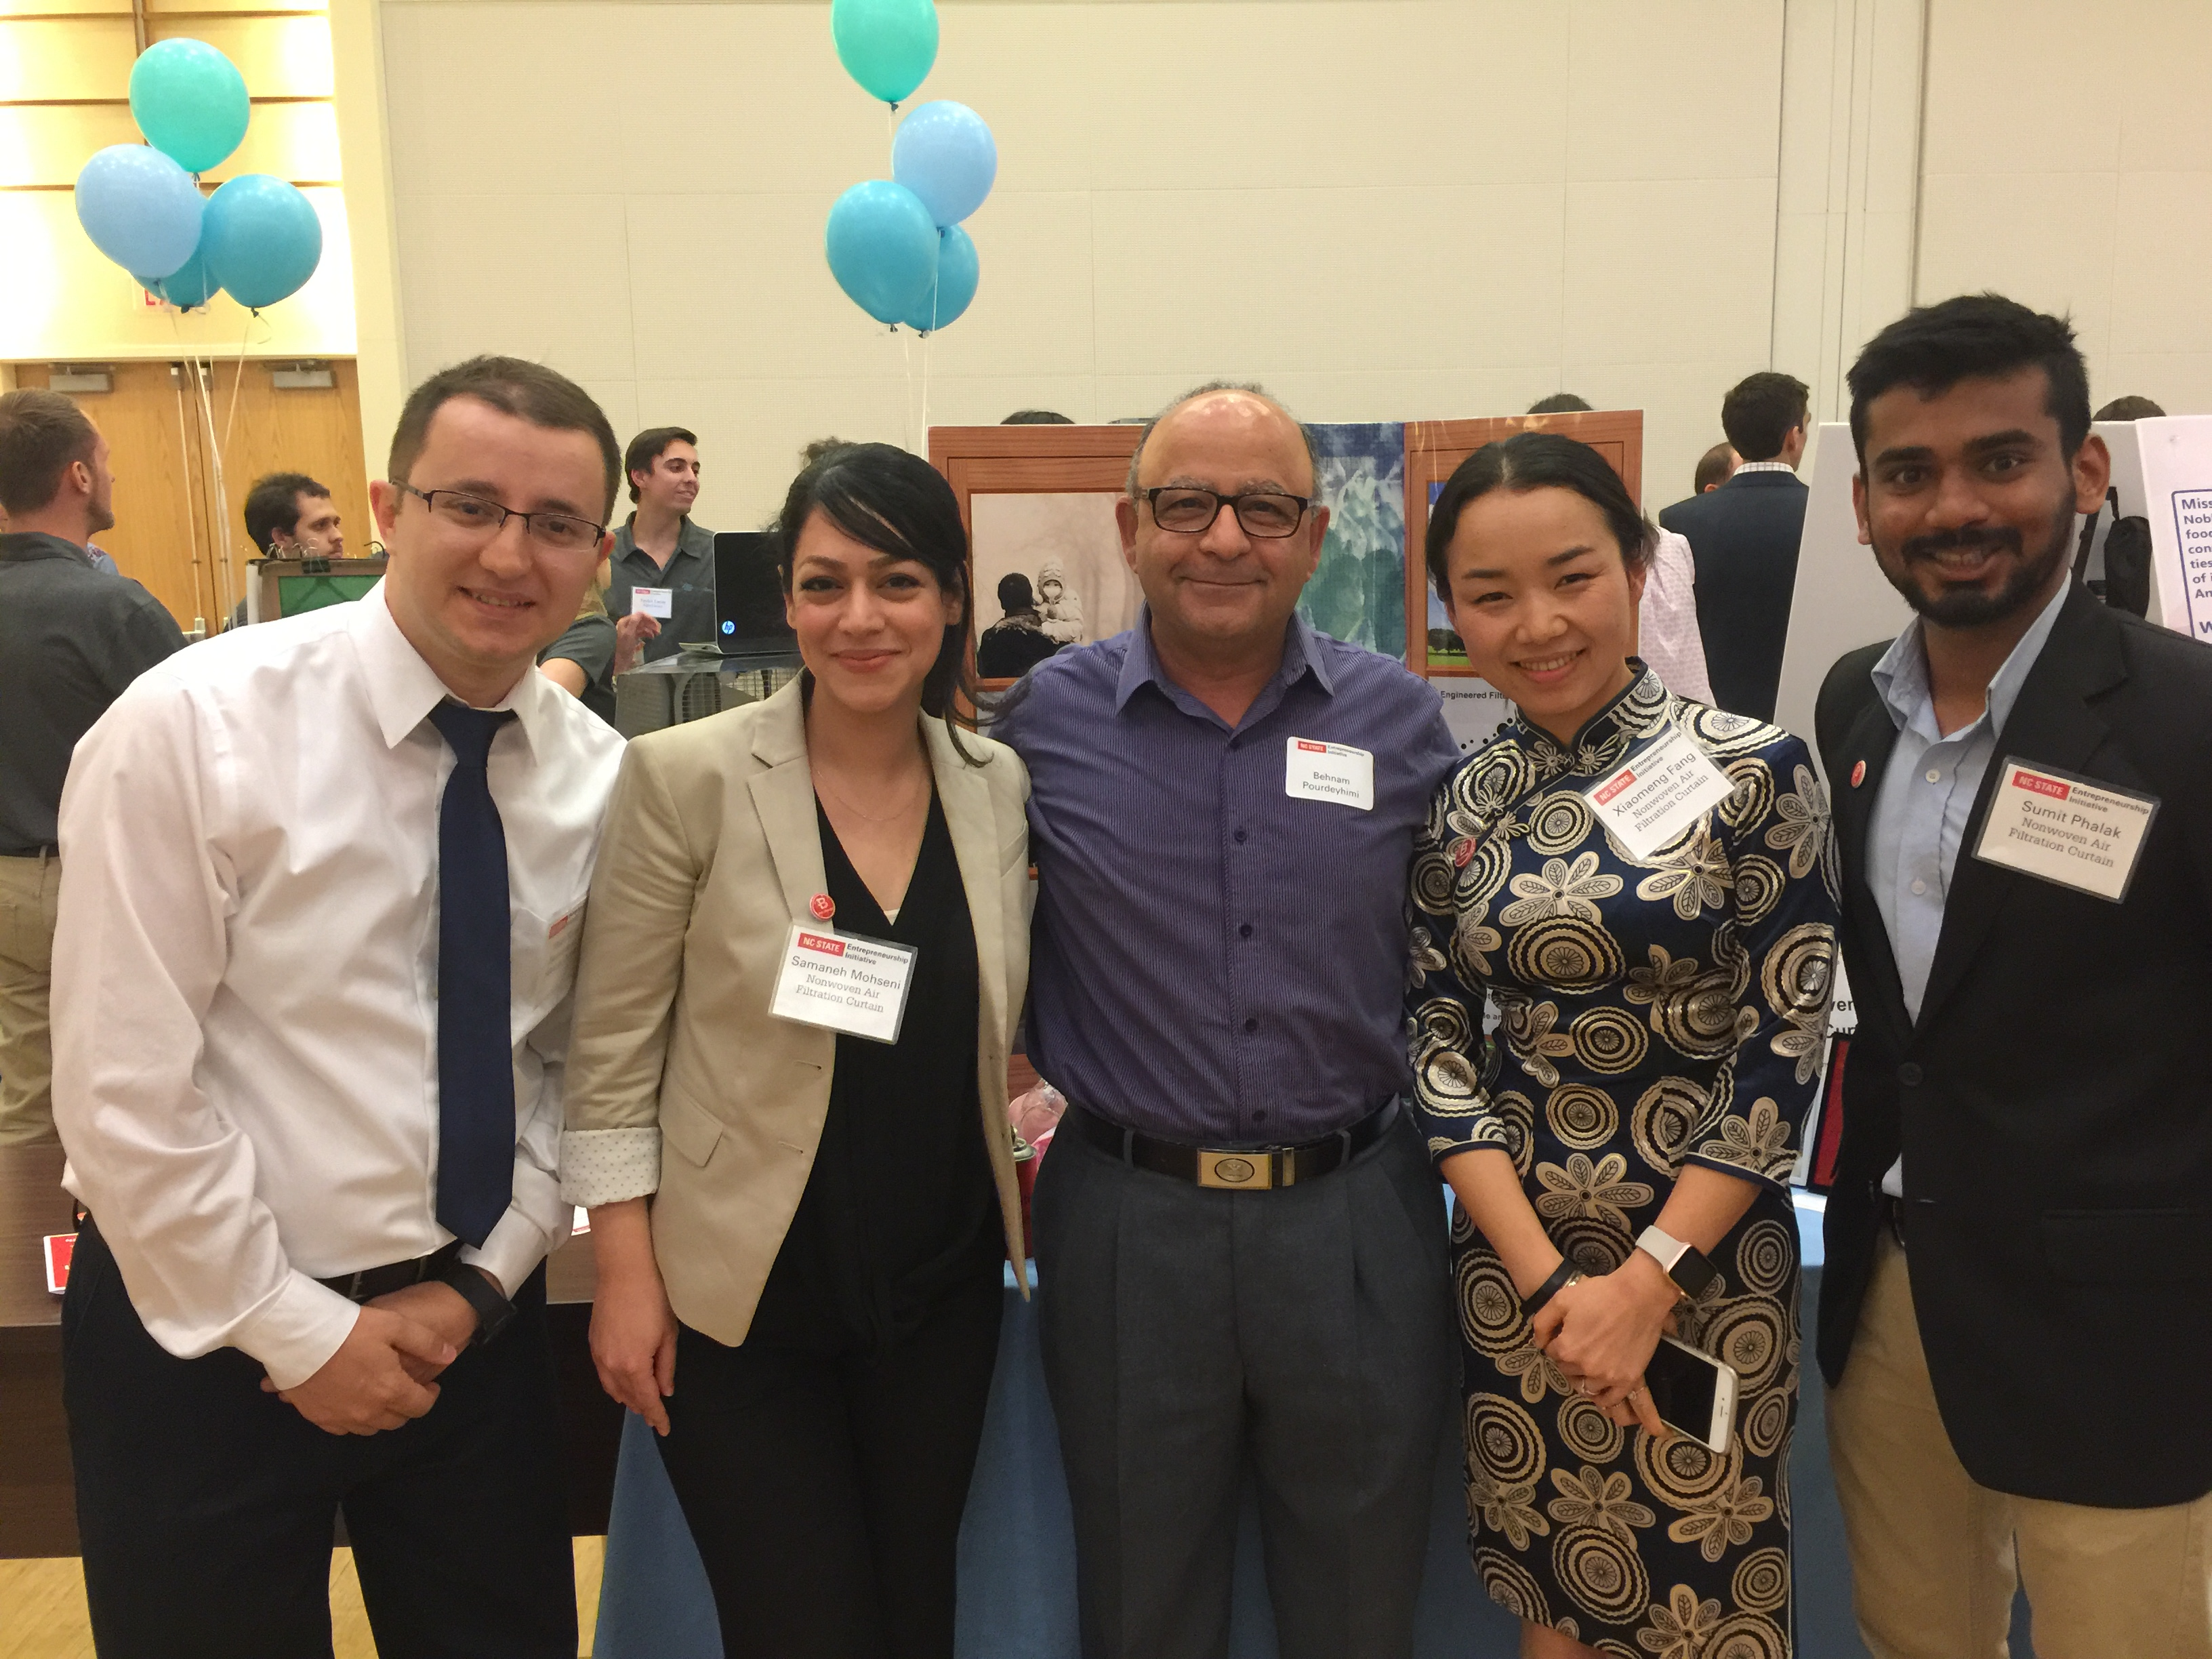 Four College of Textiles doctoral students took first place honors in one of the Lulu eGames competition categories on April 14. The team's novel nonwoven based air-filtration products won the B Corp Champions Challenge portion of the annual startup competition. They are standing with Behnam Pourdeyhimi